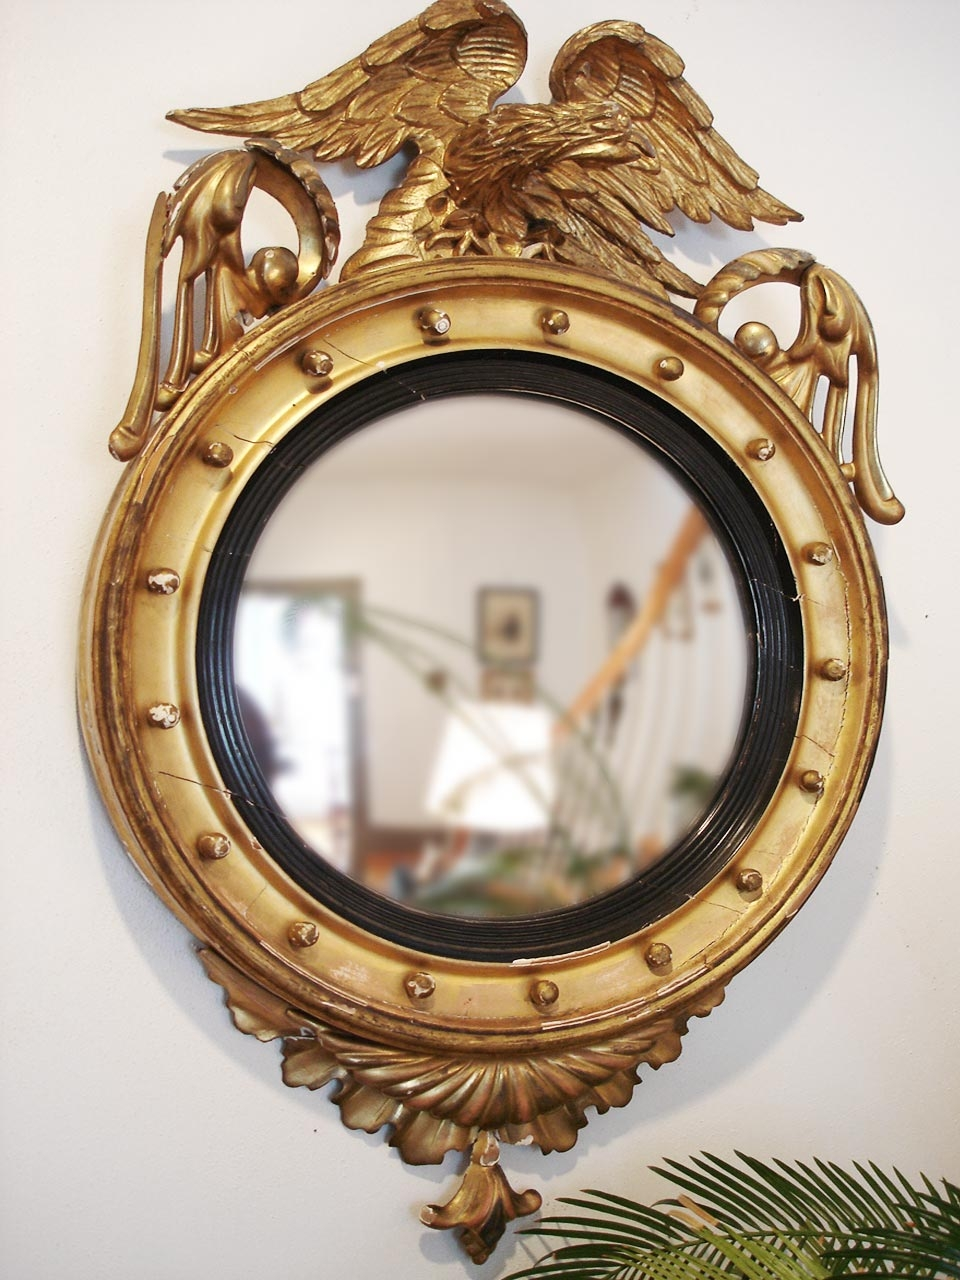 Eagle Federal Convex Mirror Spray Paint Black Or Different Color Throughout Convex Mirror Decorative (Image 10 of 15)